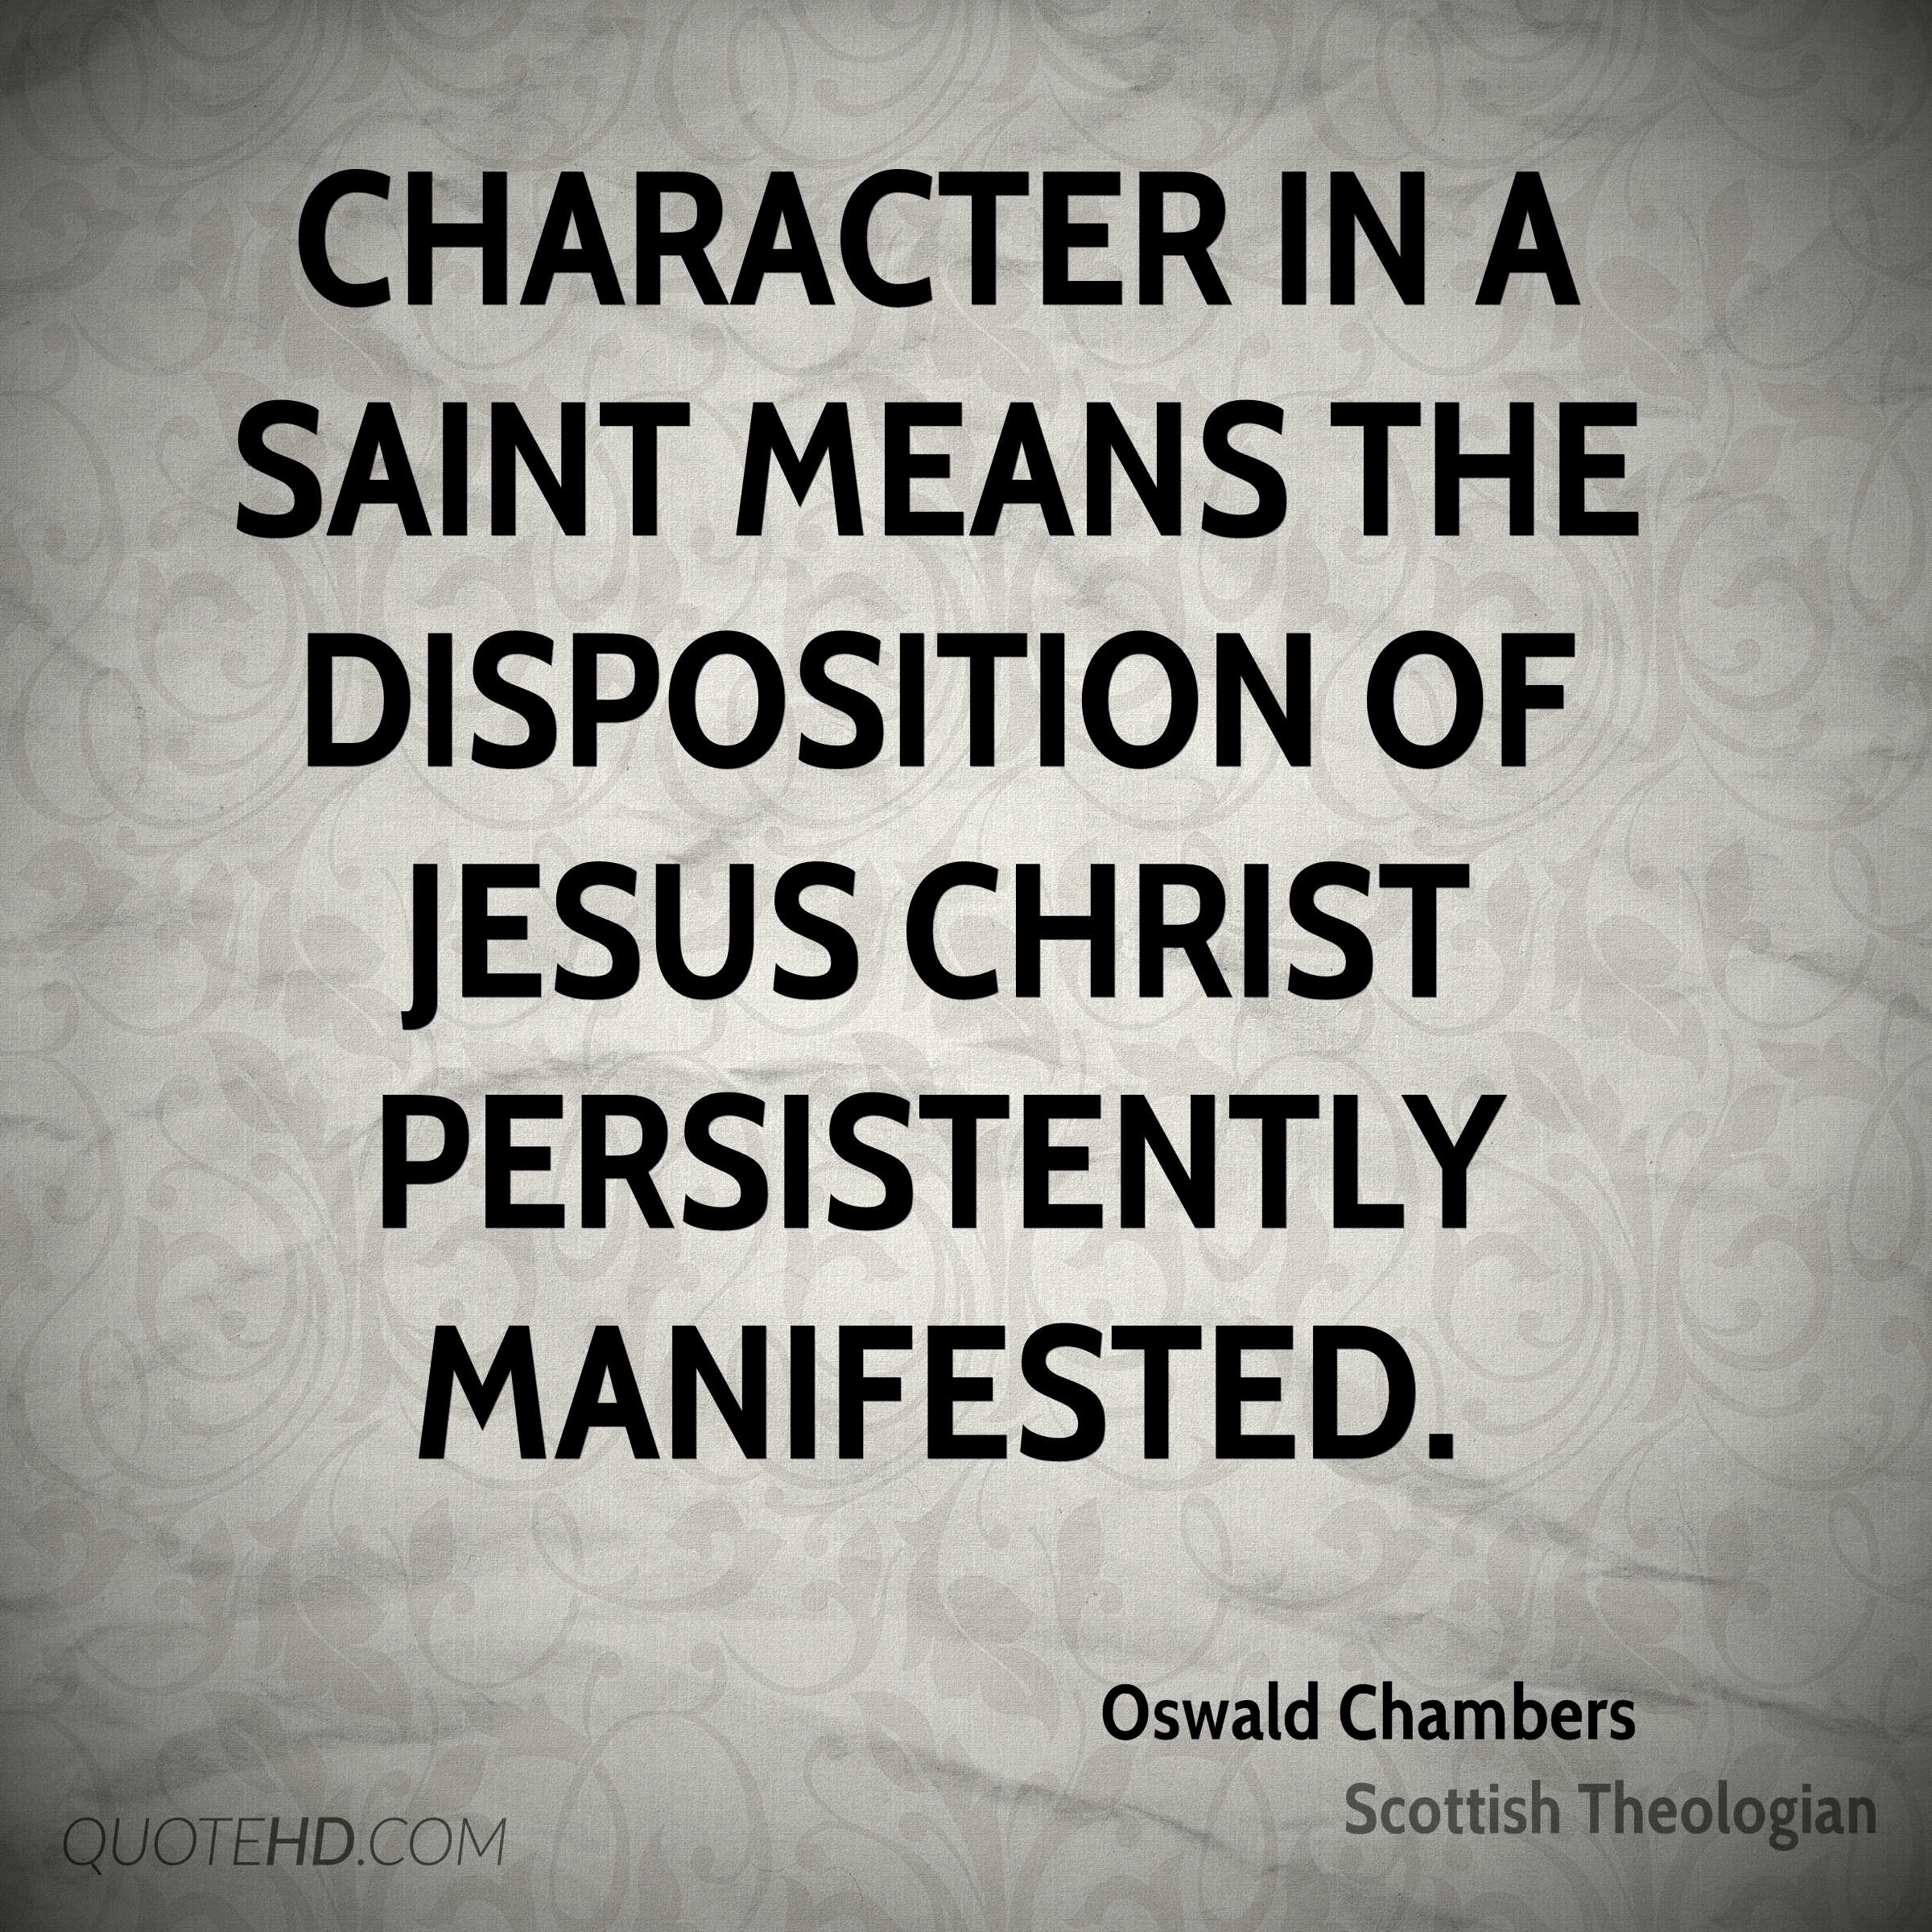 Character in a saint means the disposition of Jesus Christ persistently manifested.